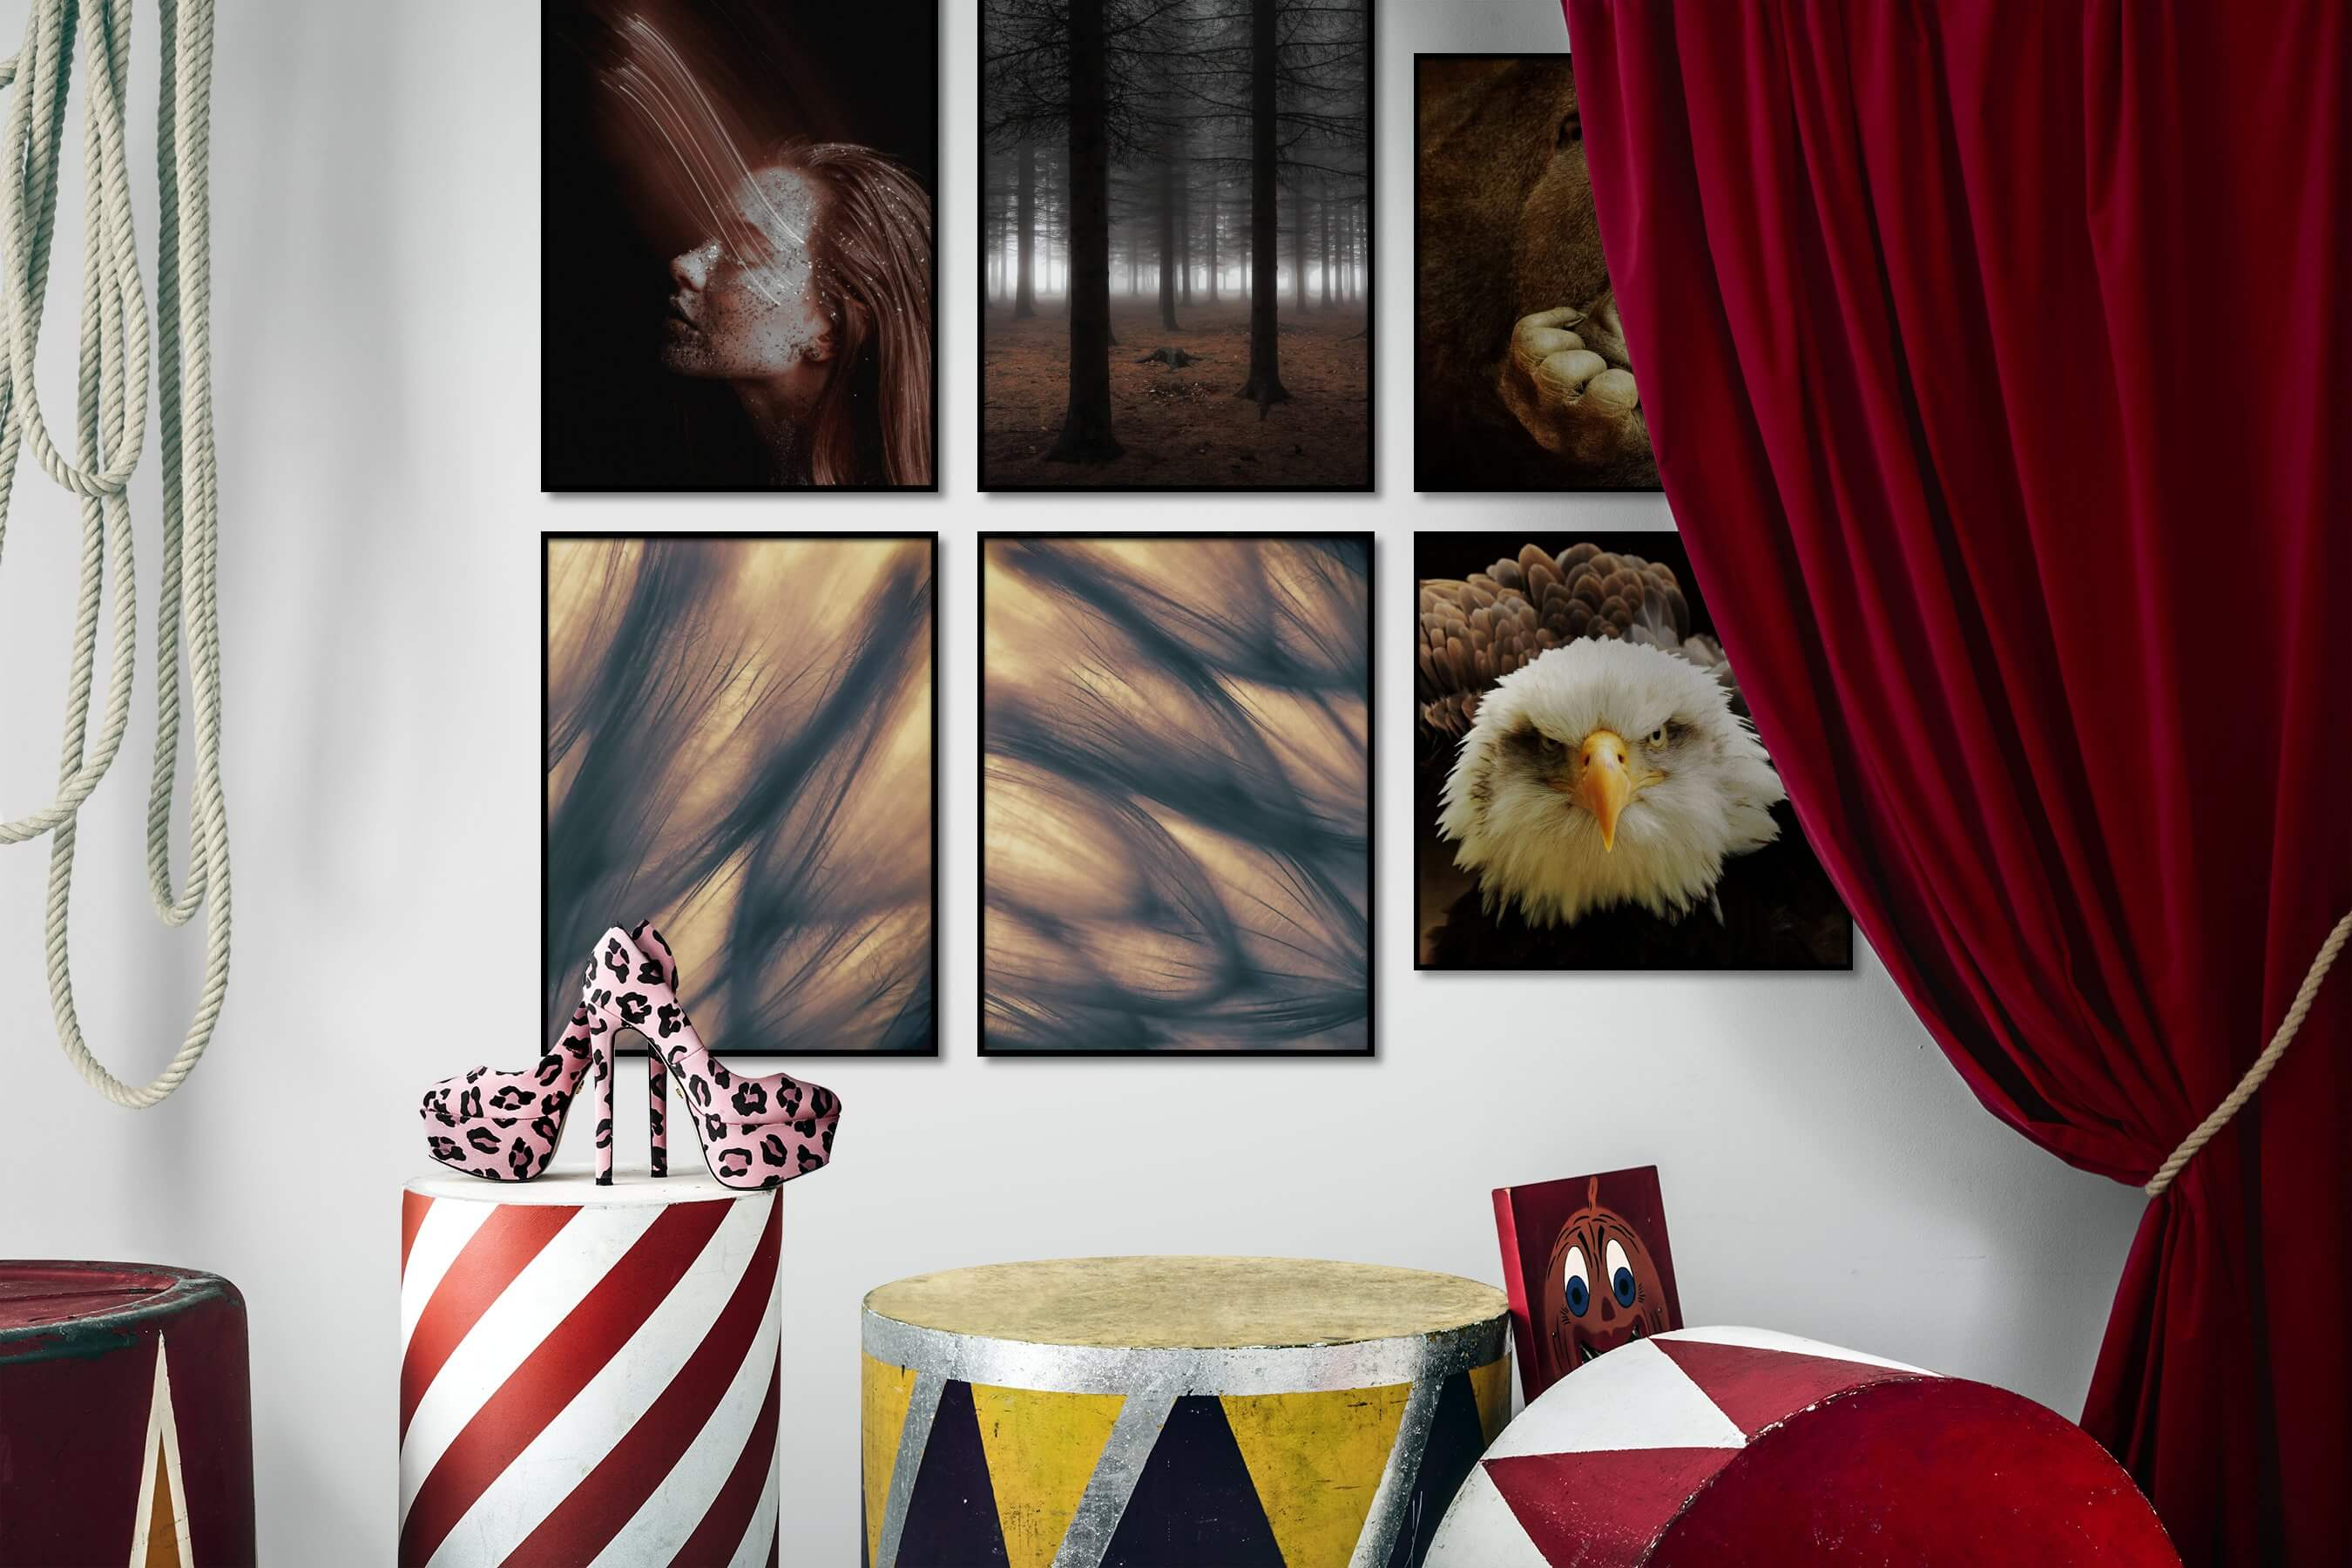 Gallery wall idea with six framed pictures arranged on a wall depicting Fashion & Beauty, Dark Tones, For the Moderate, Nature, Flowers & Plants, Mindfulness, Animals, and Americana